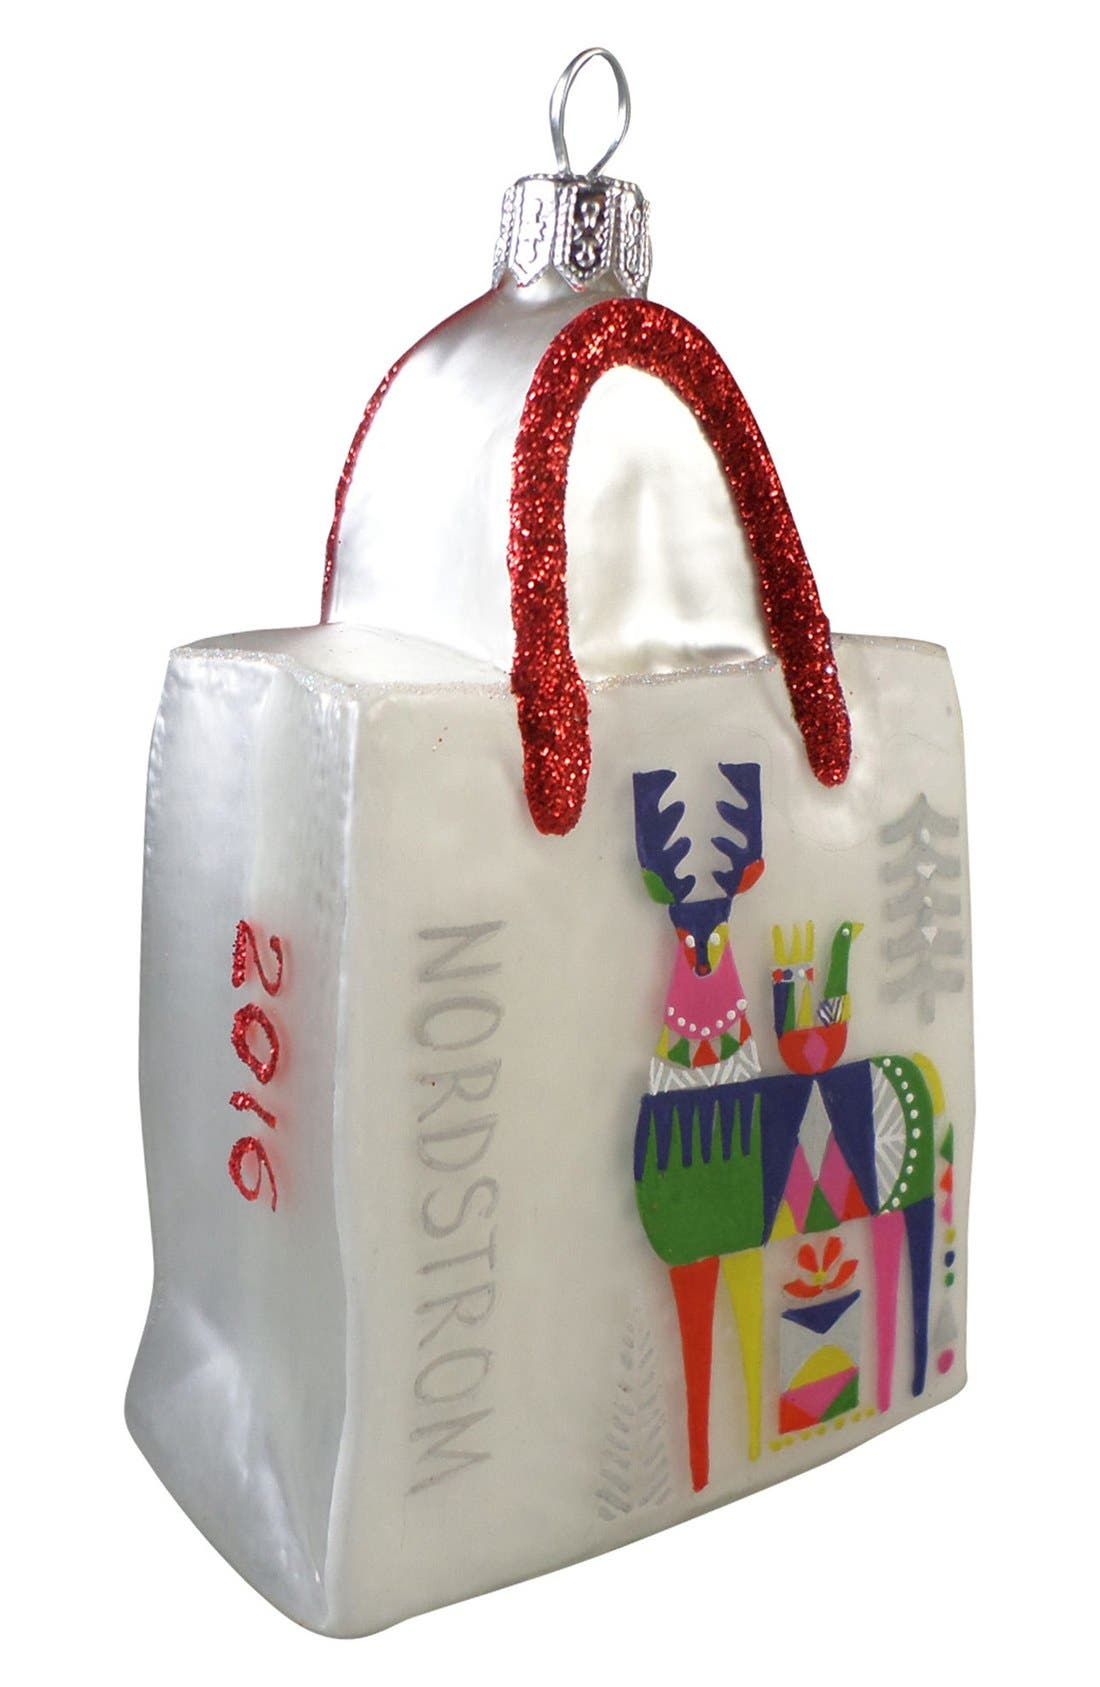 'Stag' Glass Shopping Bag Ornament,                             Main thumbnail 1, color,                             100